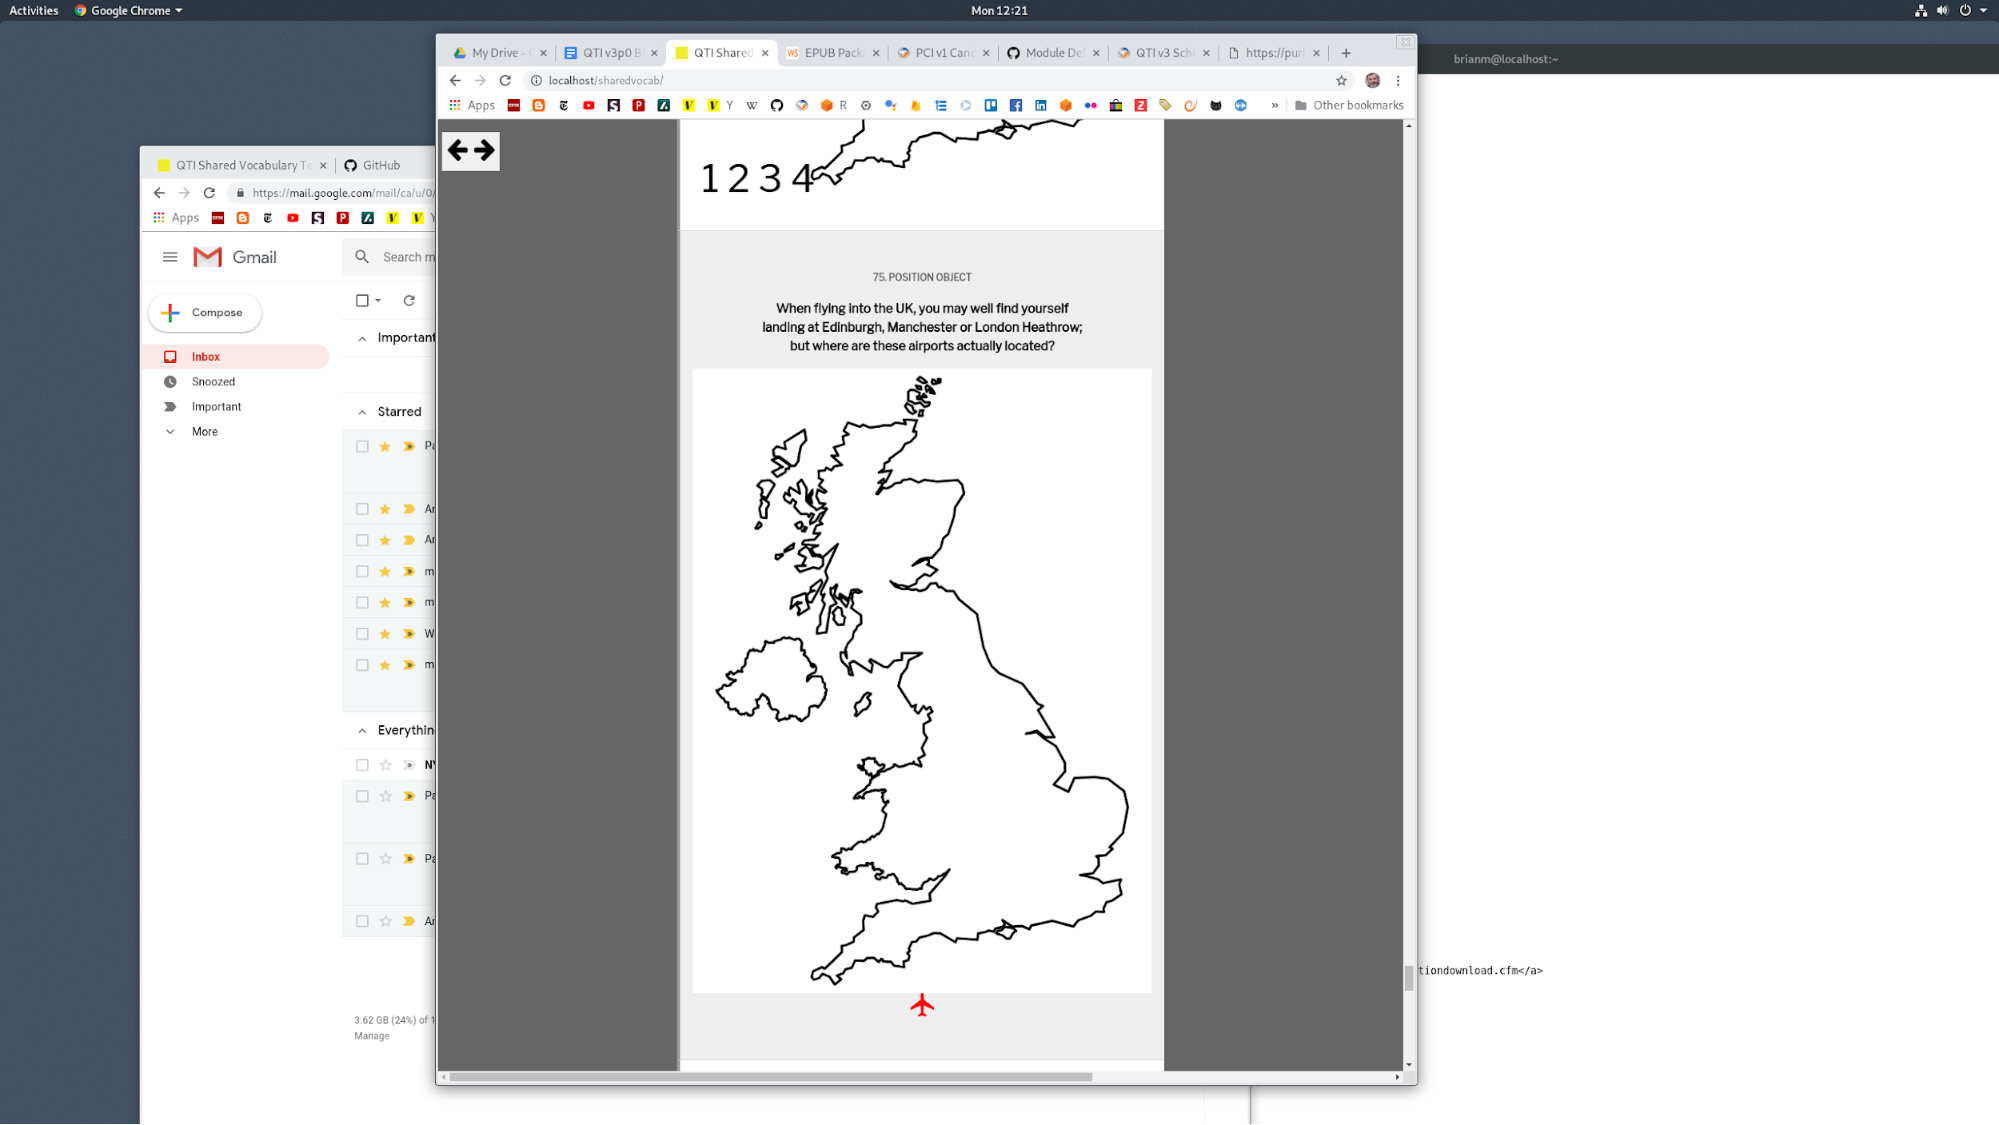 A paragraph of text is shown above an image. The image is a line drawing of the United Kingdom.                        Below the line drawing is an airplane icon.